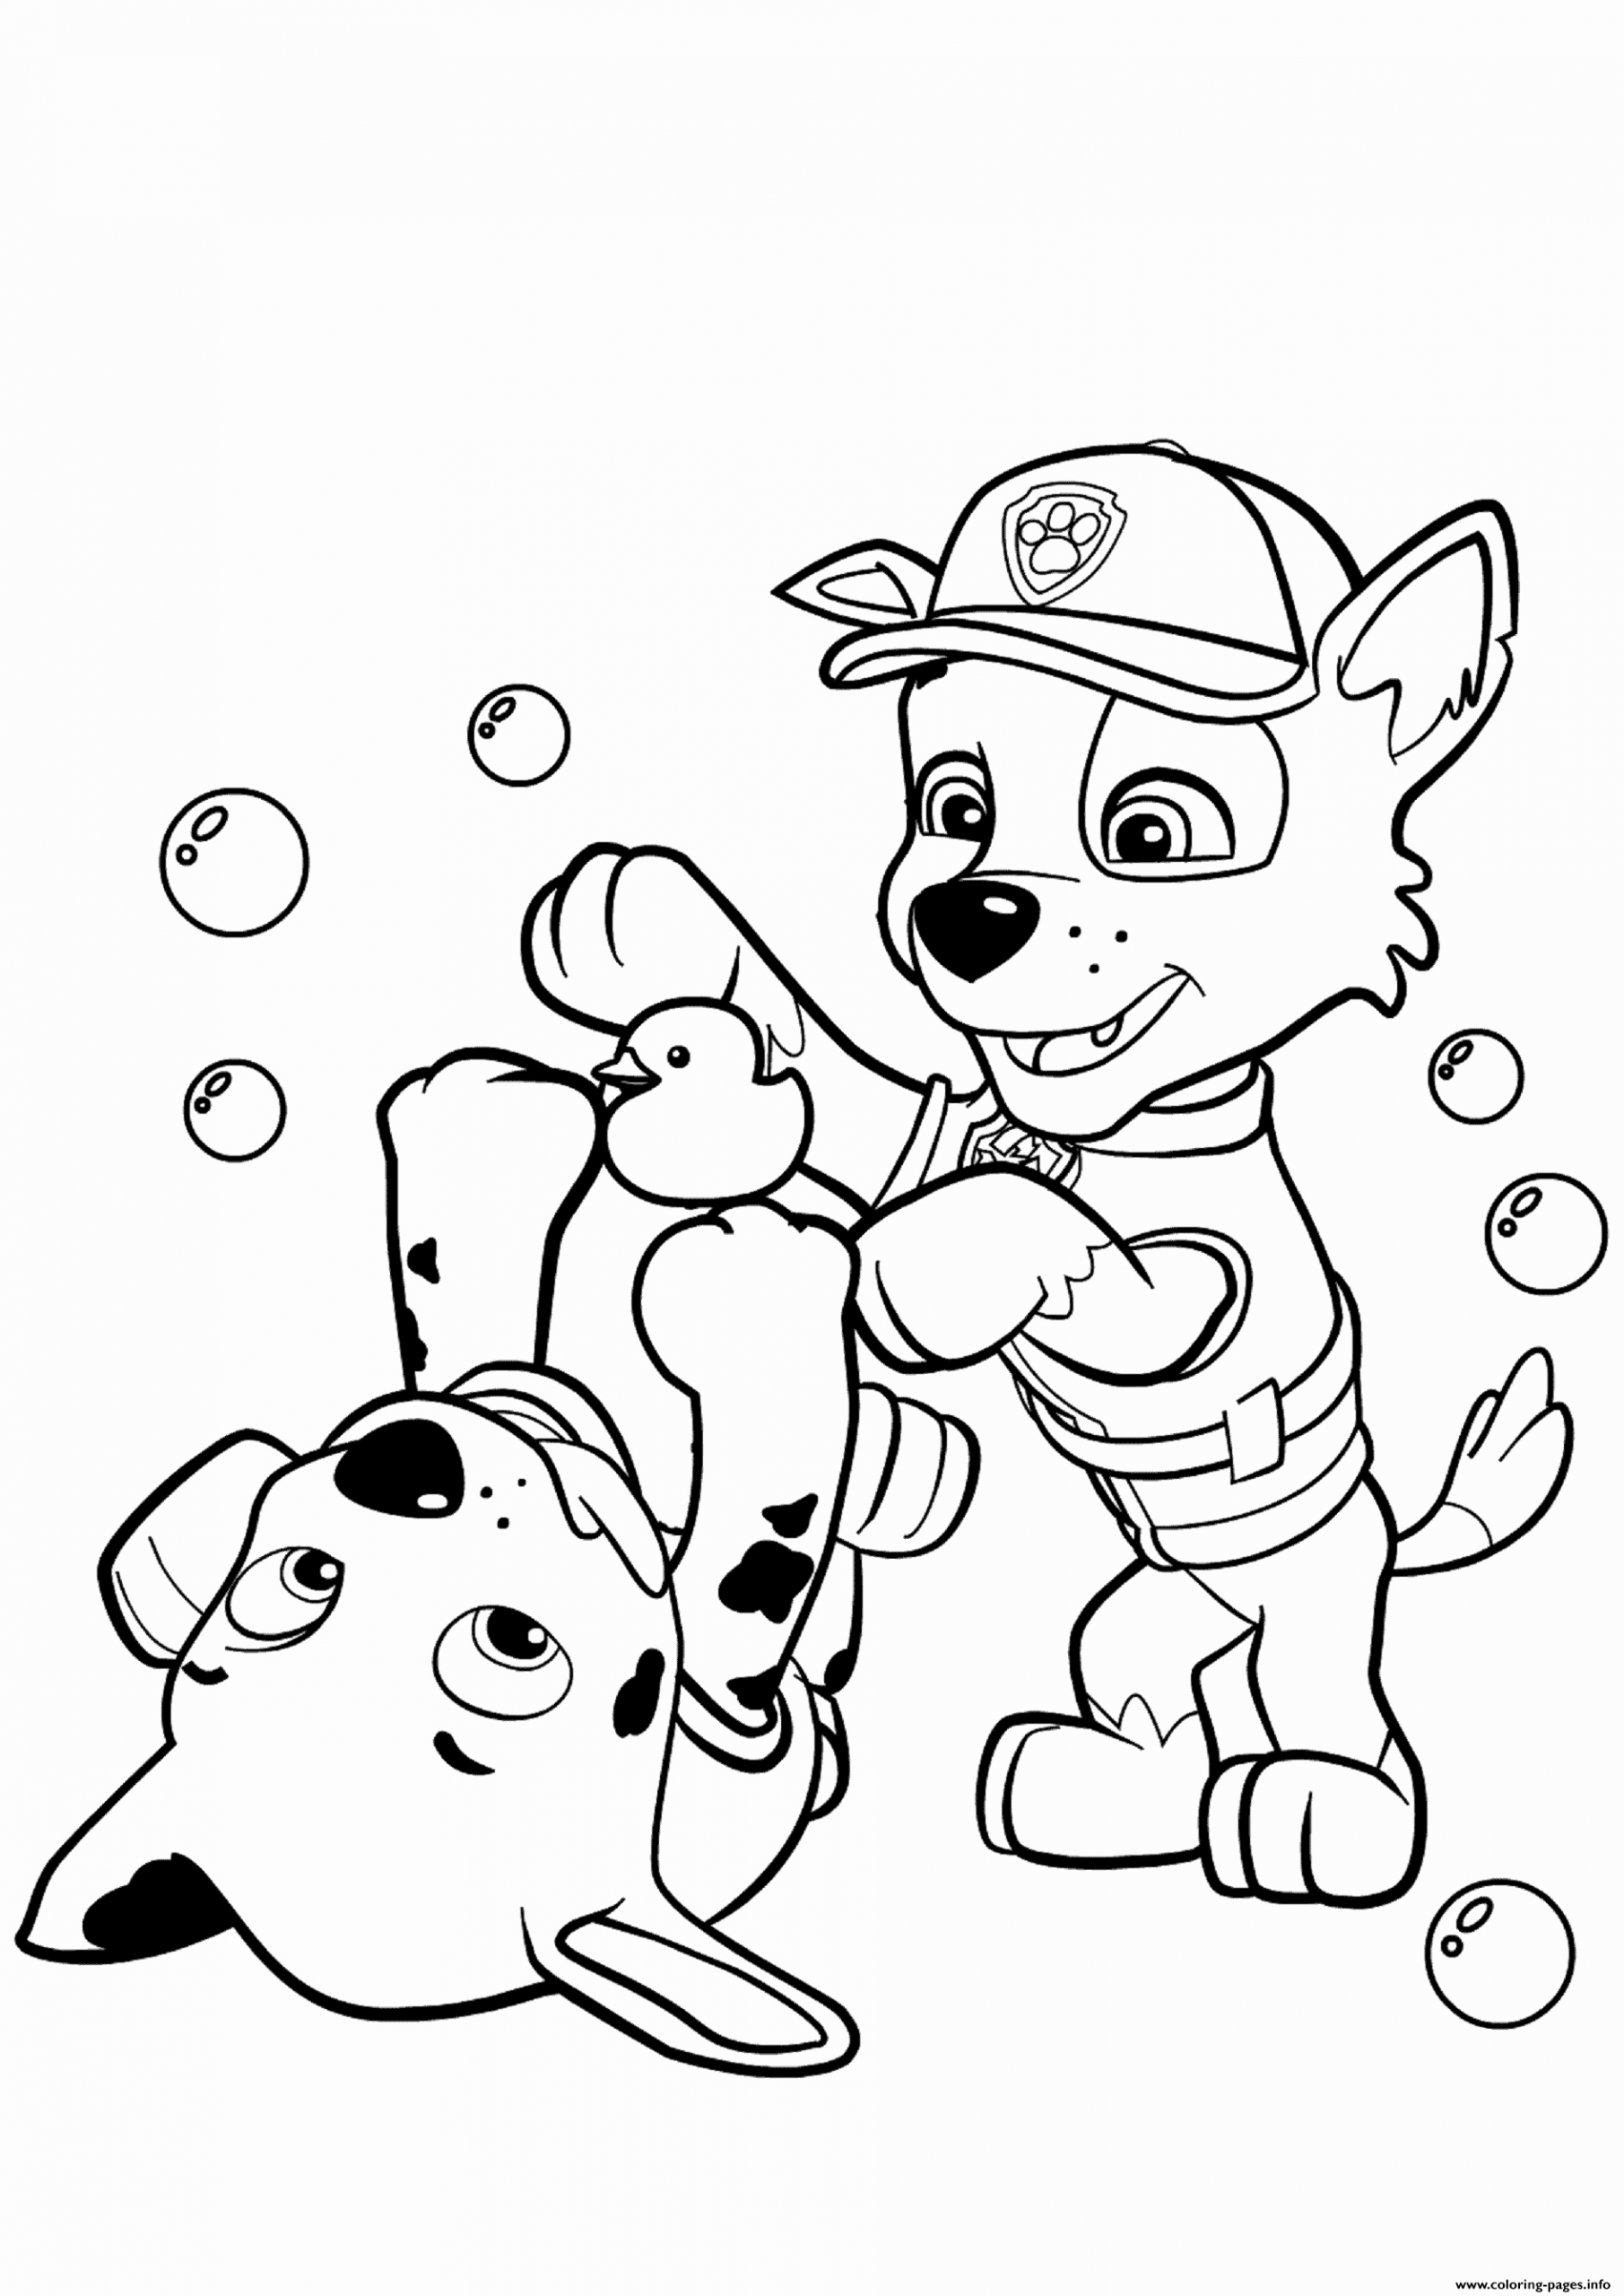 Marshall Paw Patrol Coloring Page Inspirational Paw Patrol Rocky And Marshall Coloring Pa Paw Patrol Coloring Pages Paw Patrol Coloring Birthday Coloring Pages